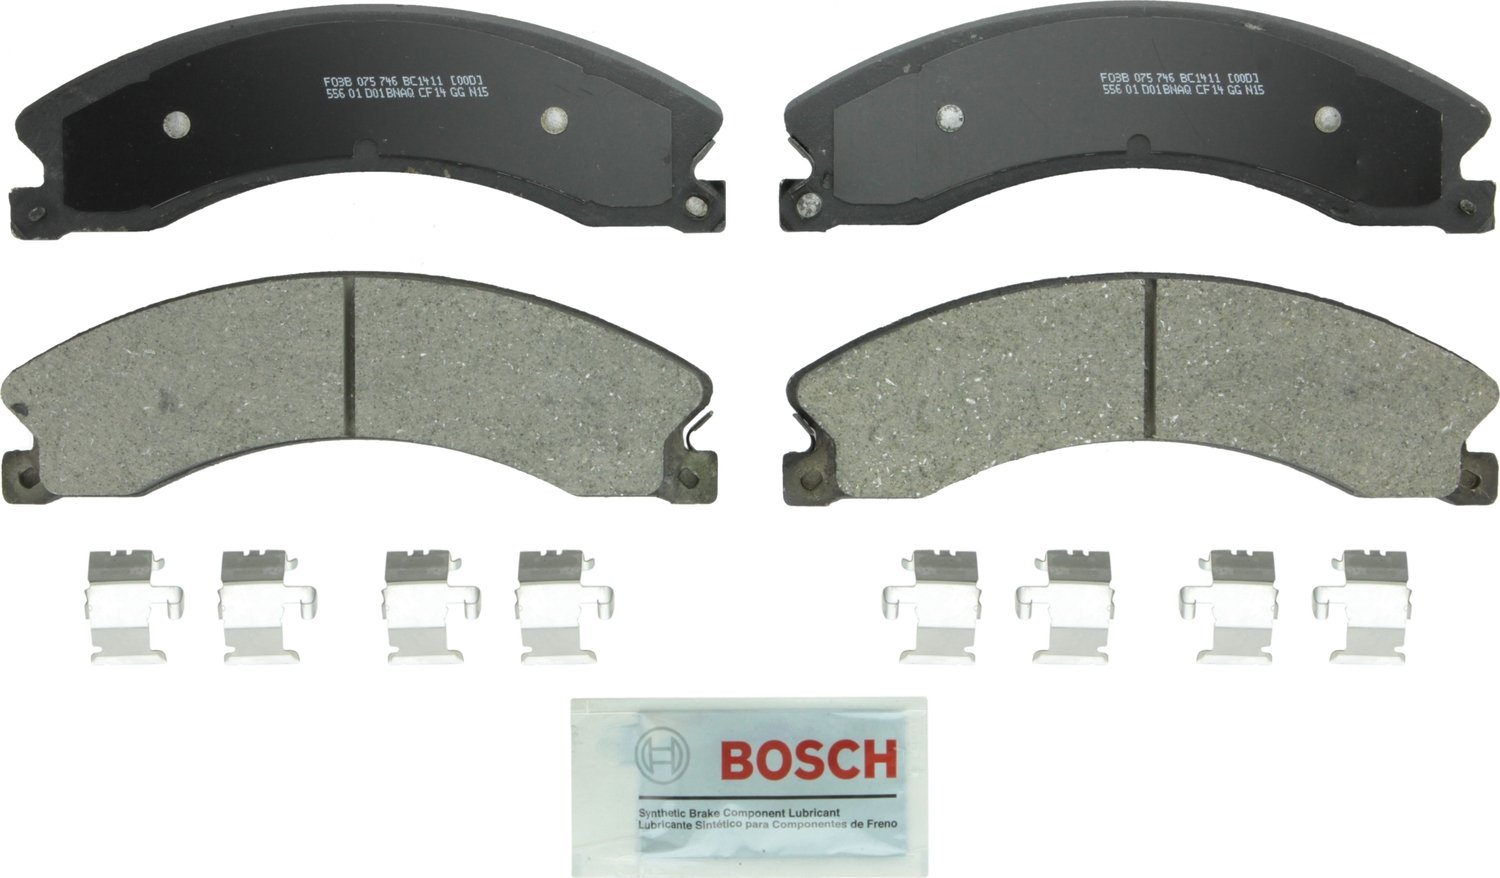 Bosch BC1411 QuietCast Brake Pad Set